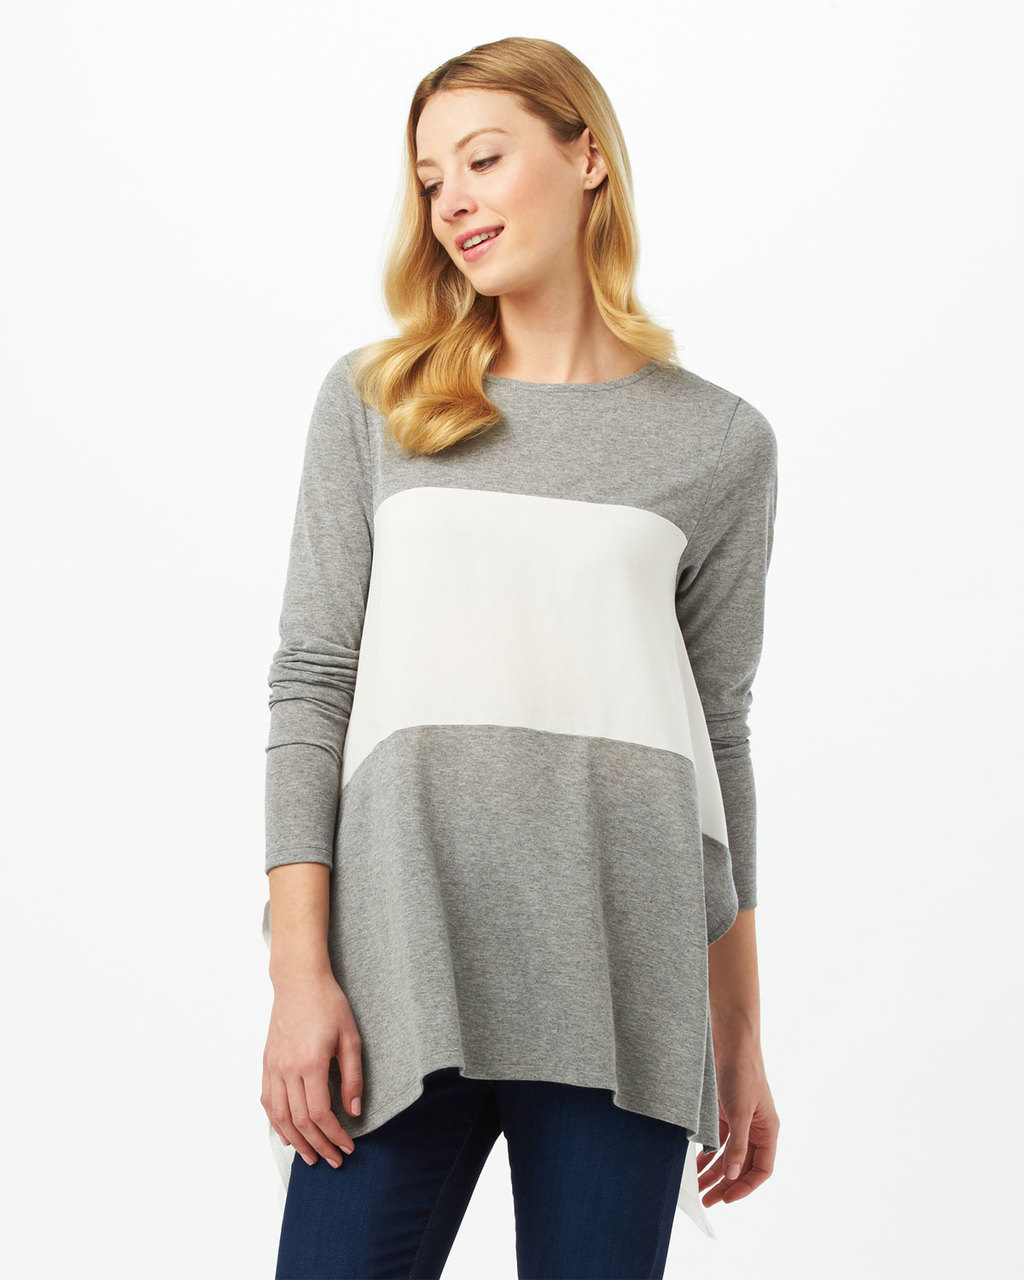 Caroline Colour Block Top - pattern: plain; length: below the bottom; secondary colour: white; predominant colour: light grey; occasions: casual, creative work; style: top; fibres: polyester/polyamide - mix; fit: body skimming; neckline: crew; sleeve length: 3/4 length; sleeve style: standard; texture group: knits/crochet; pattern type: knitted - fine stitch; season: s/s 2016; wardrobe: basic